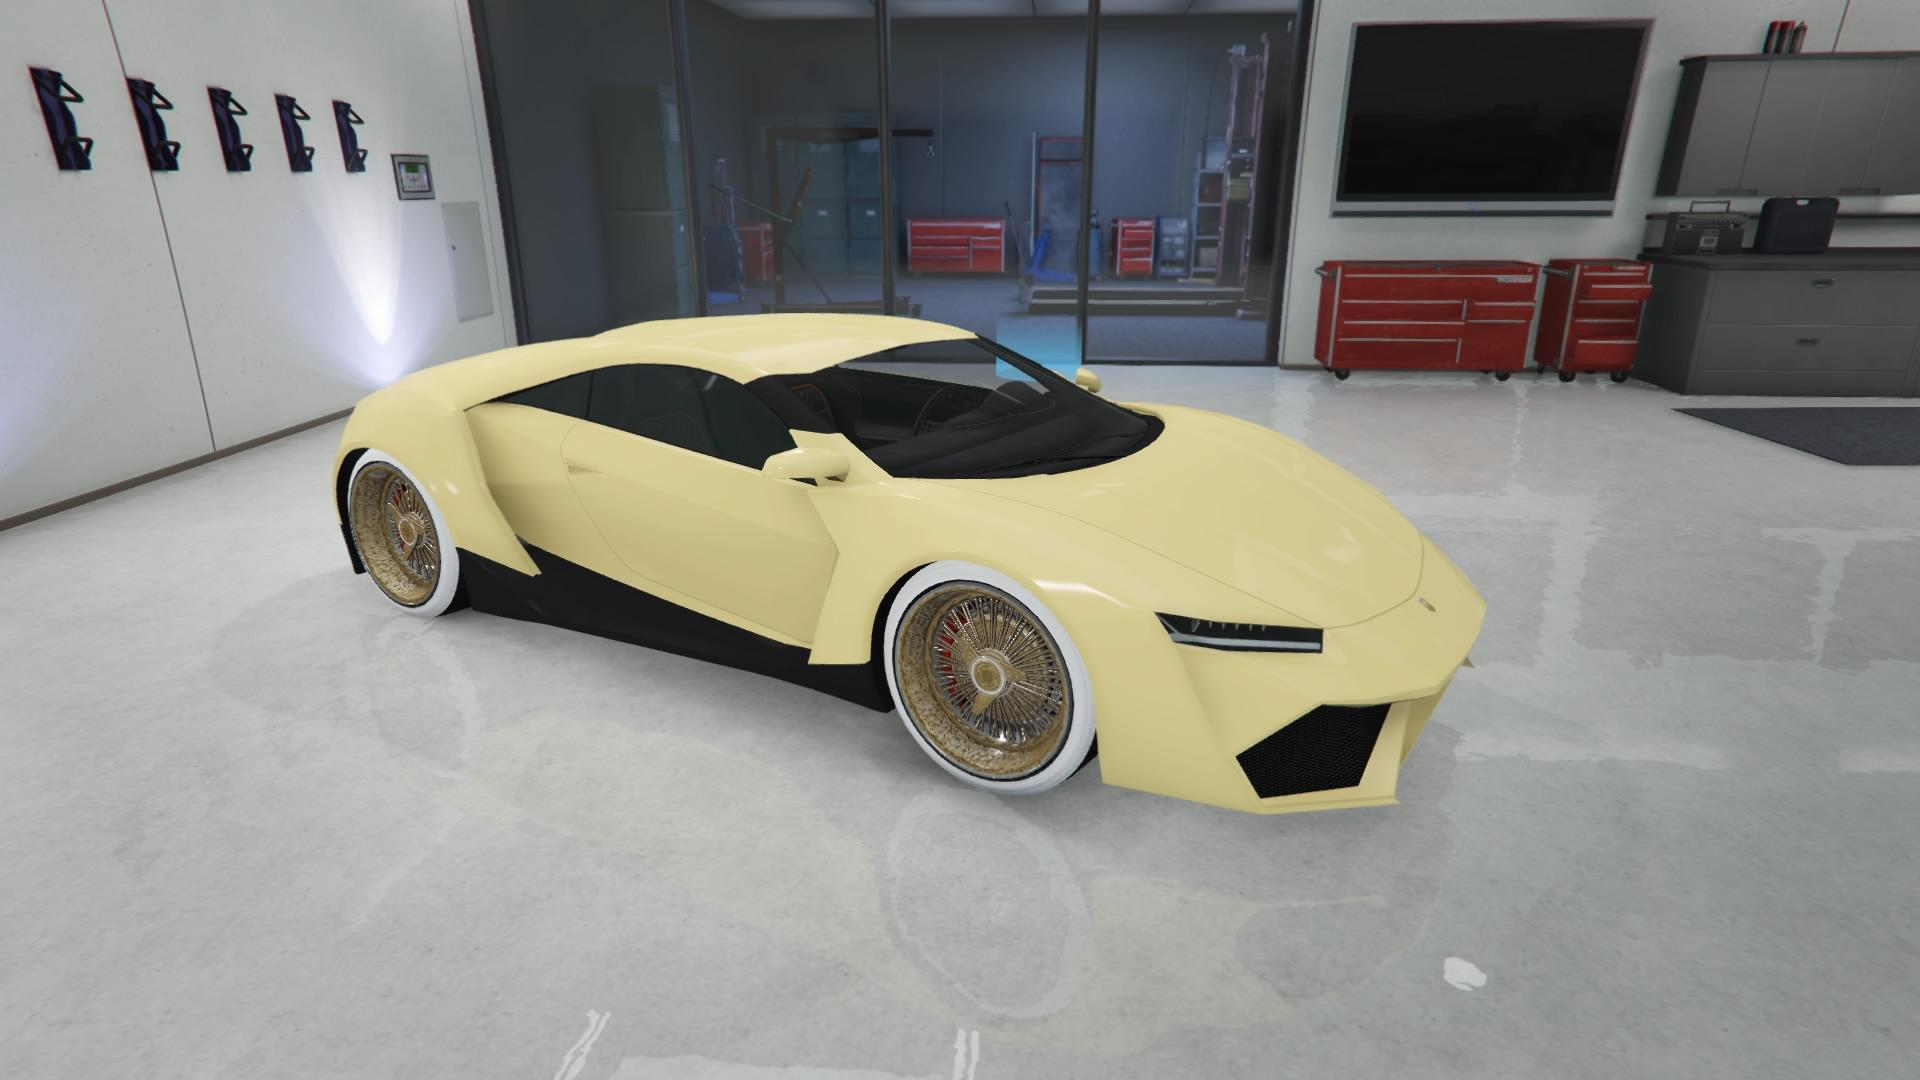 Reaper - Light yellow paint and pure white rim color